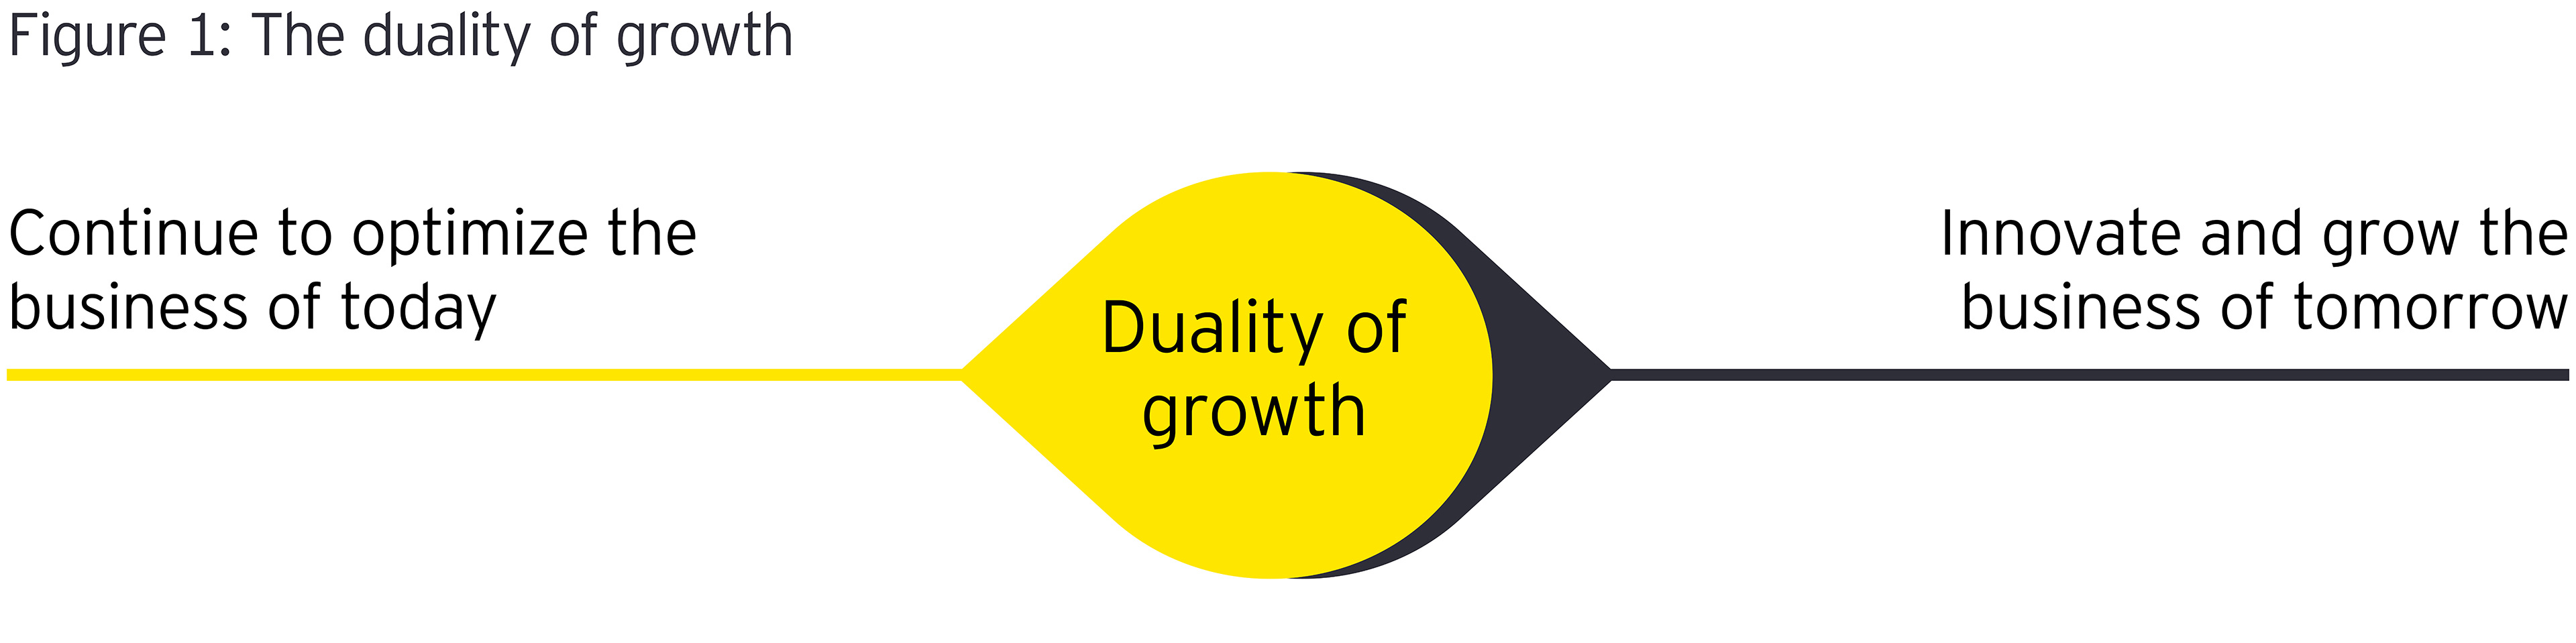 The duality of growth graphic